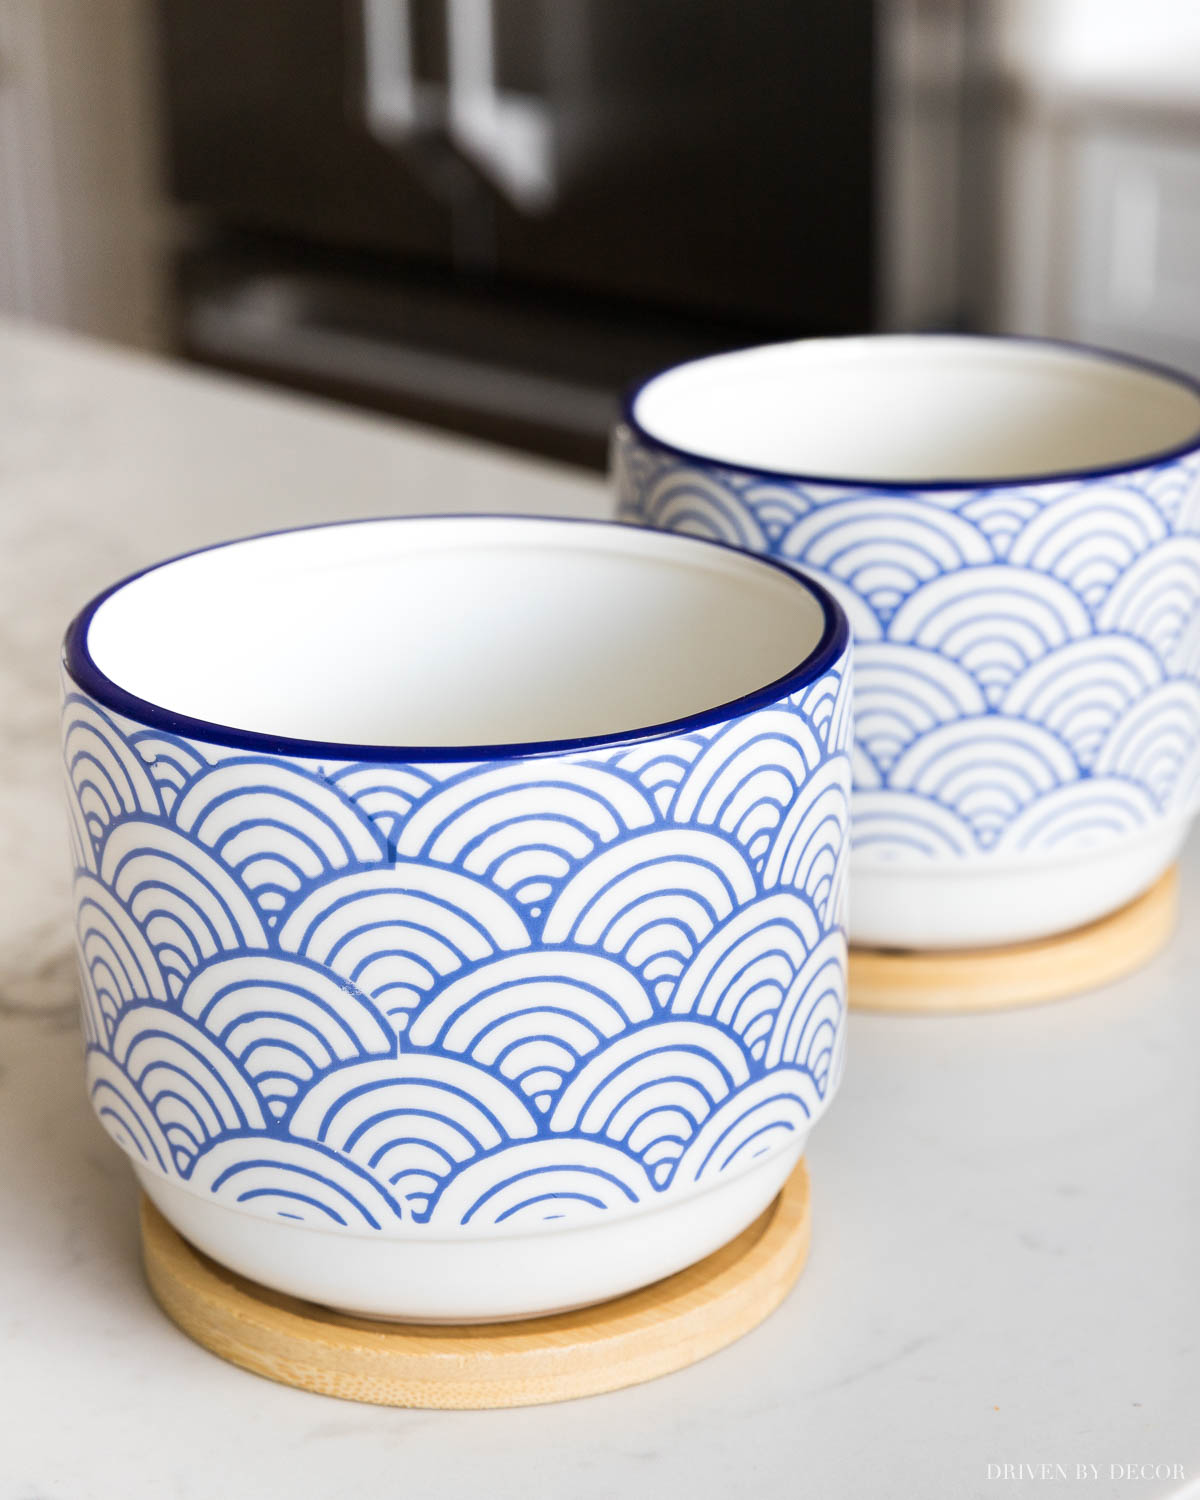 The cutest blue and white planters with bamboo drip trays - love these for spring decor!